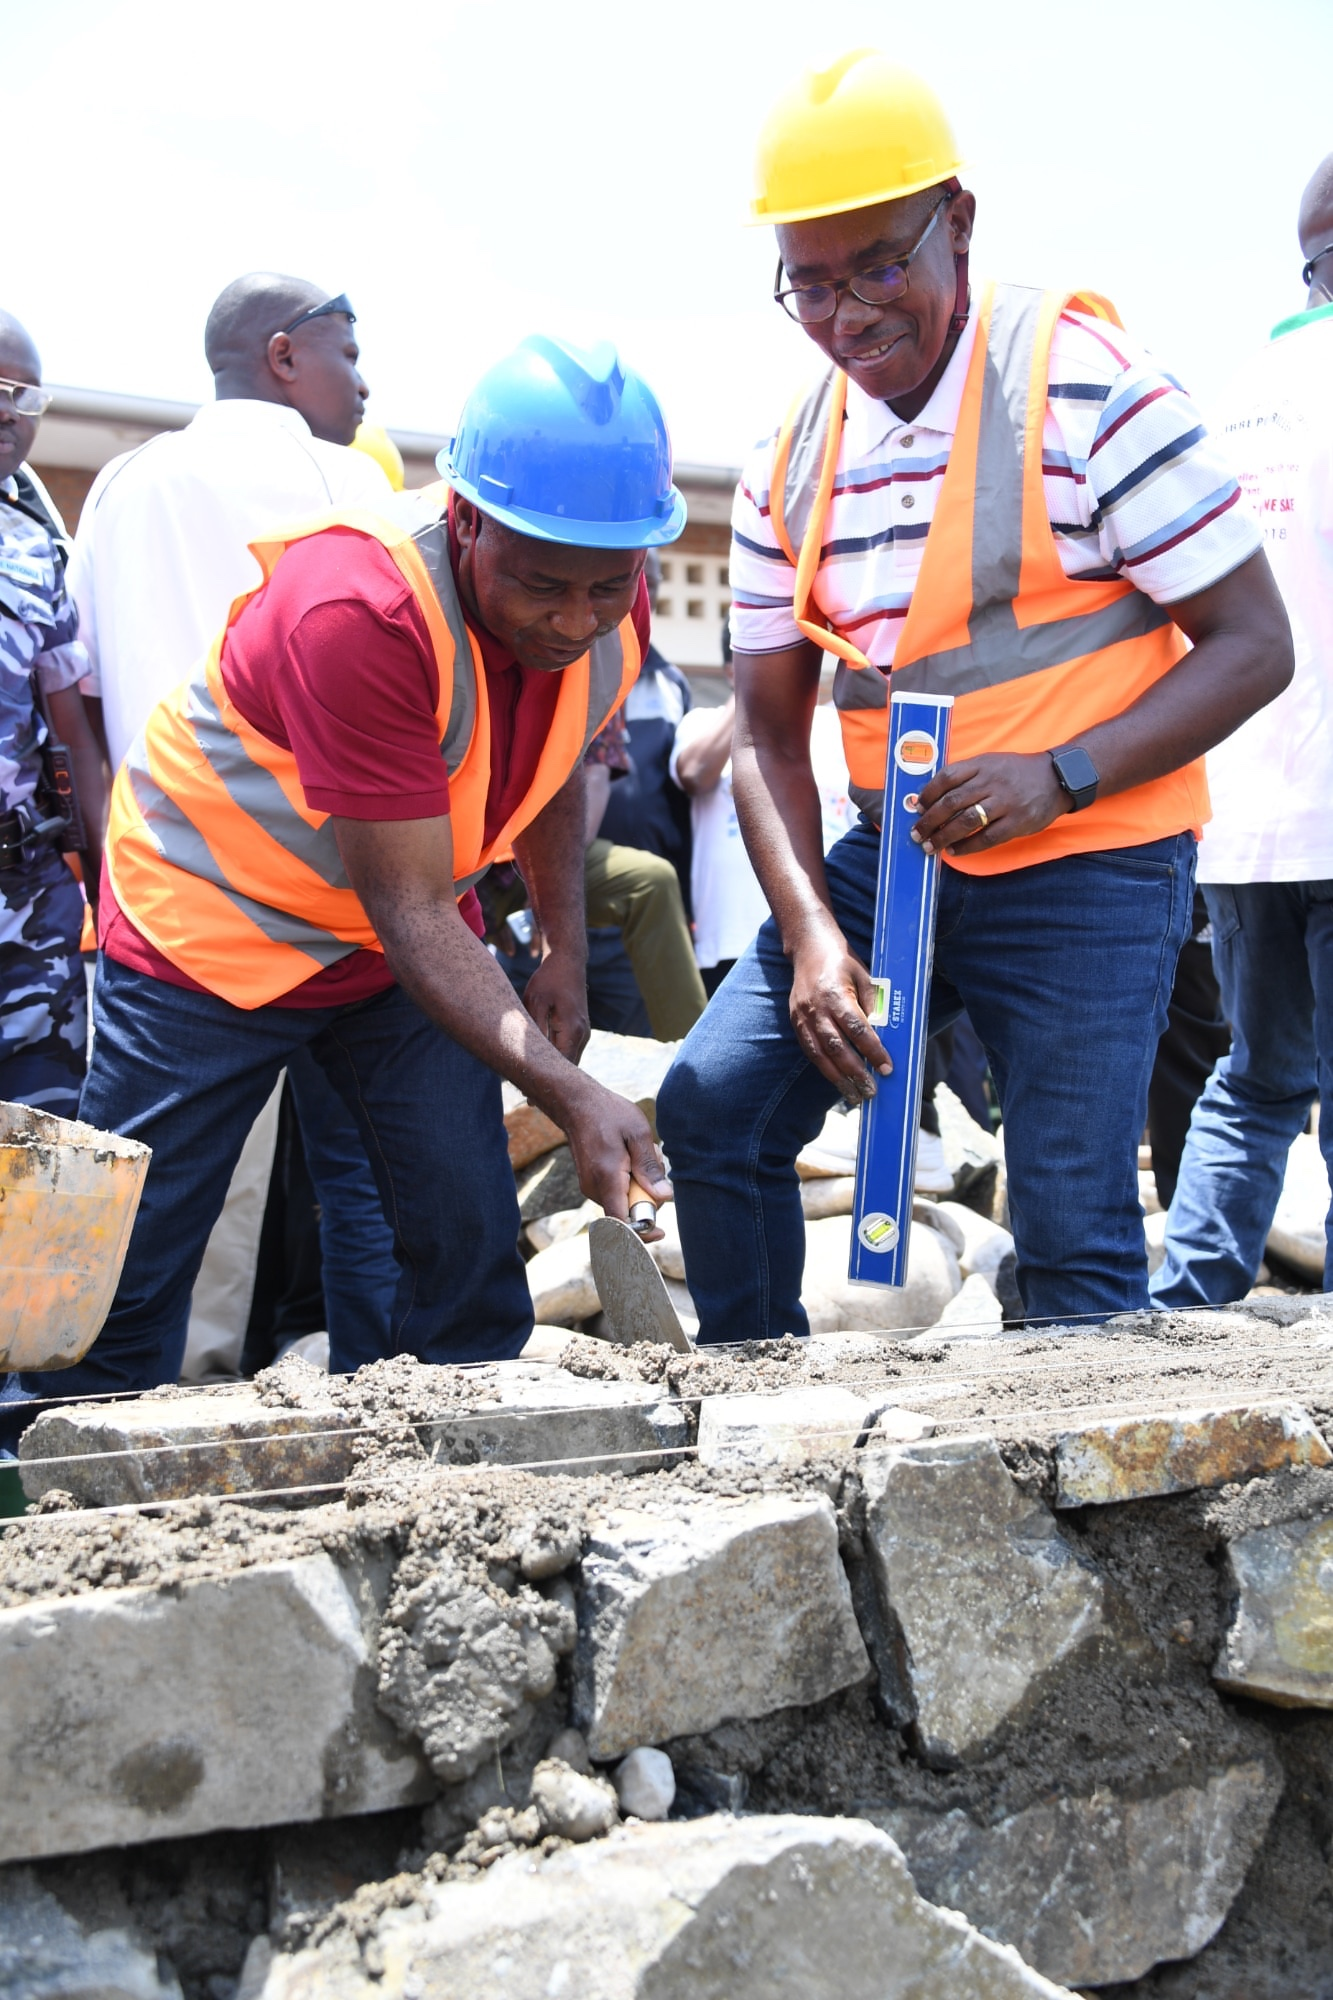 Head of State launches construction works for a COVID-19 screening center in Gihanga Commune